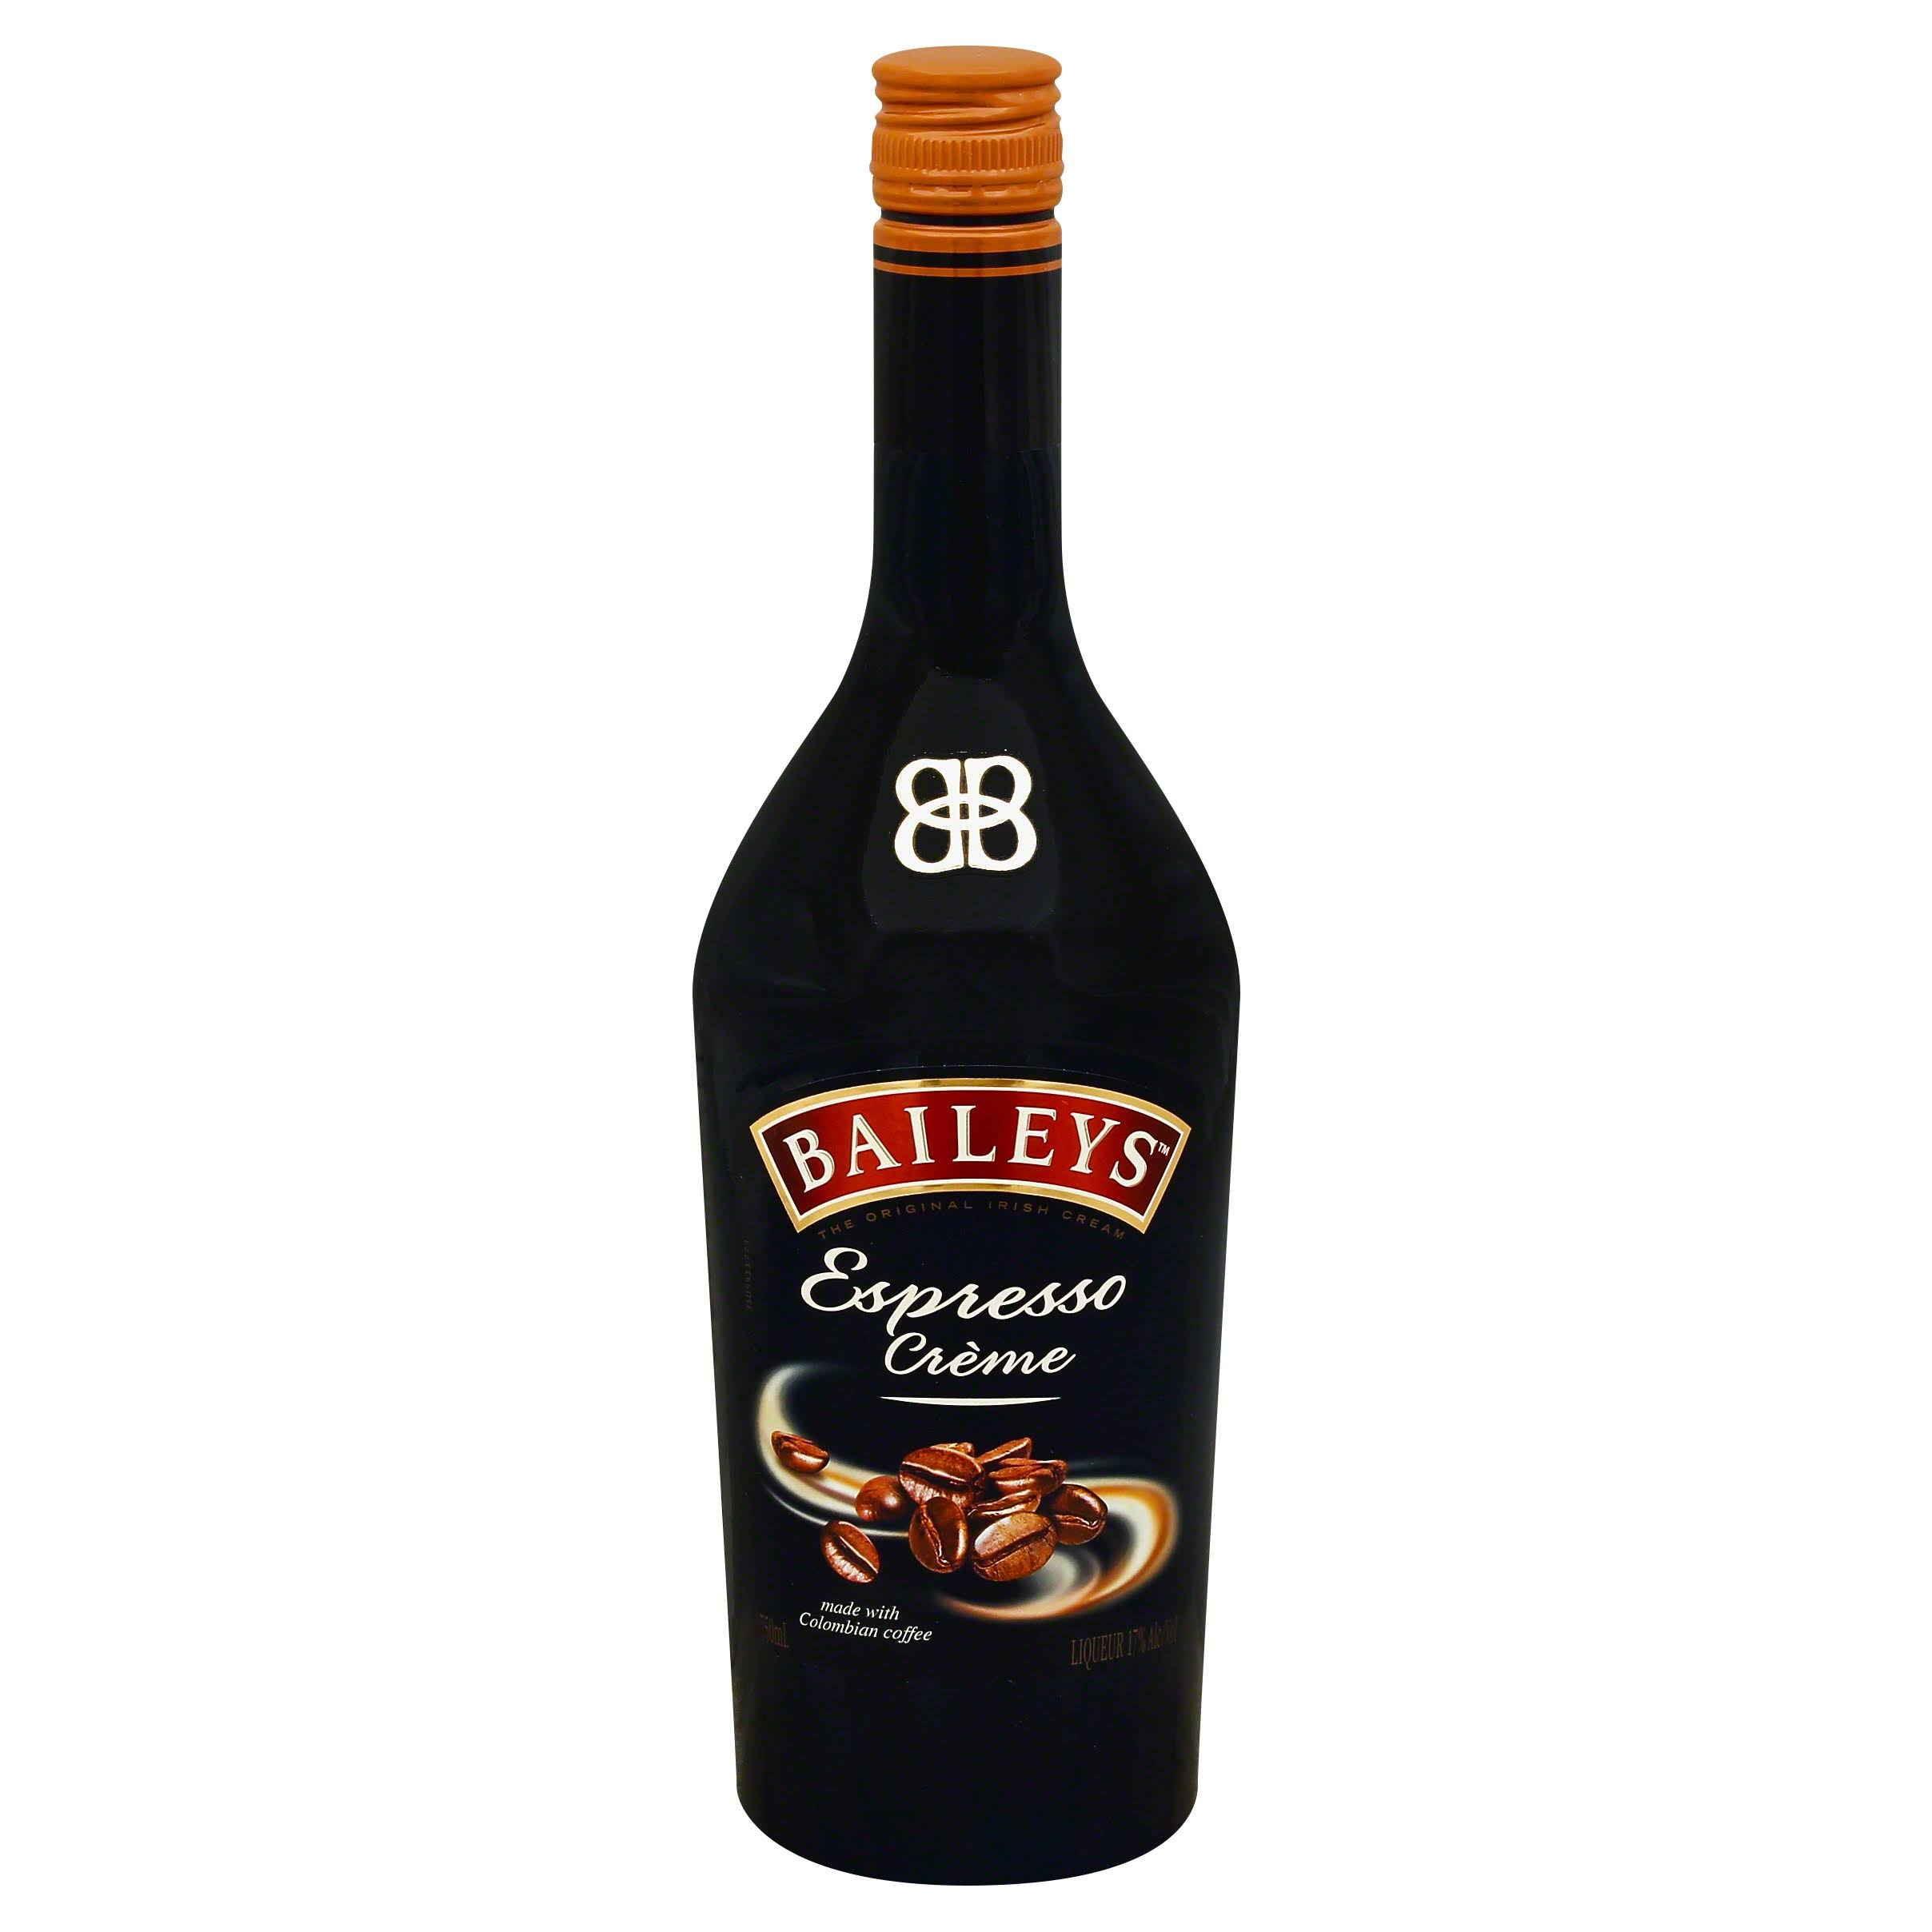 Baileys Irish Cream Espresso Liqueur - 750 ml bottle